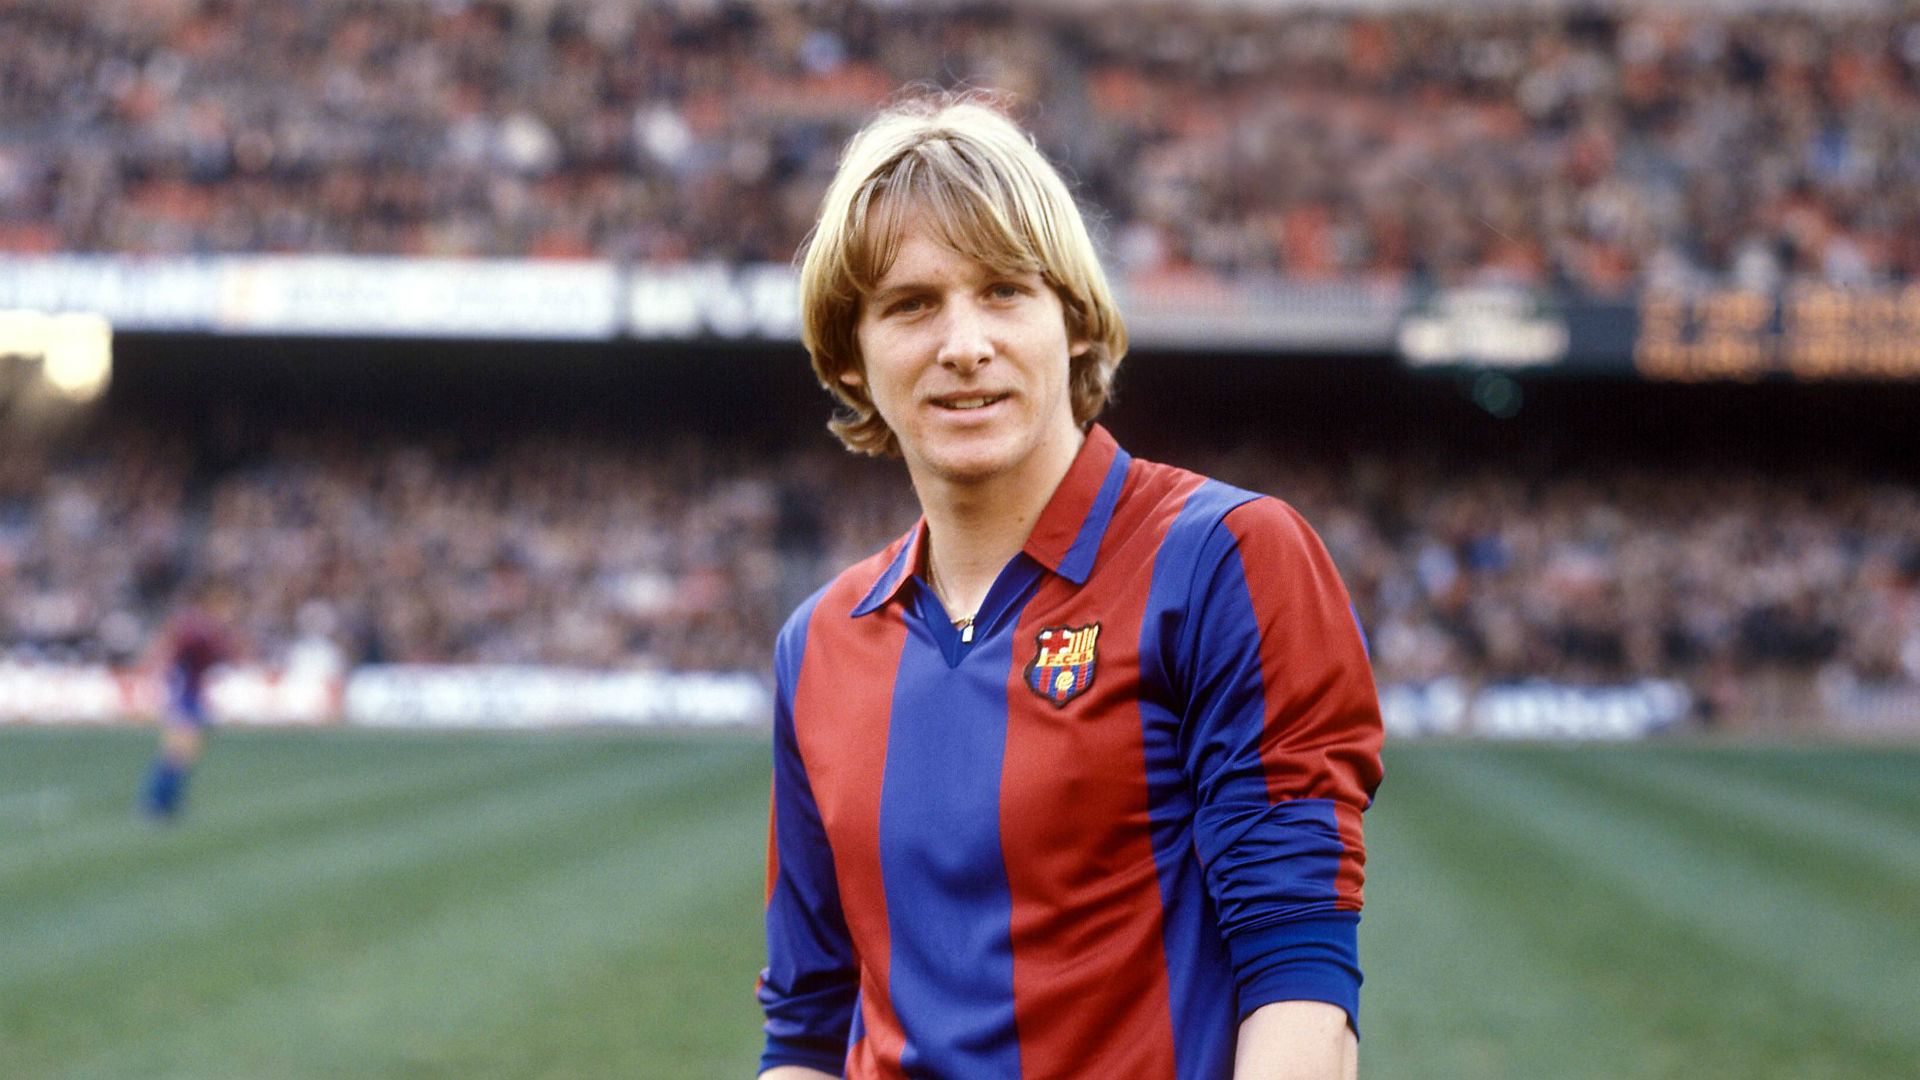 german-edition-only-bernd-schuster-fc-barcelona-09111980_88ic1mtnlw2k15x1nc4g5a673.jpg